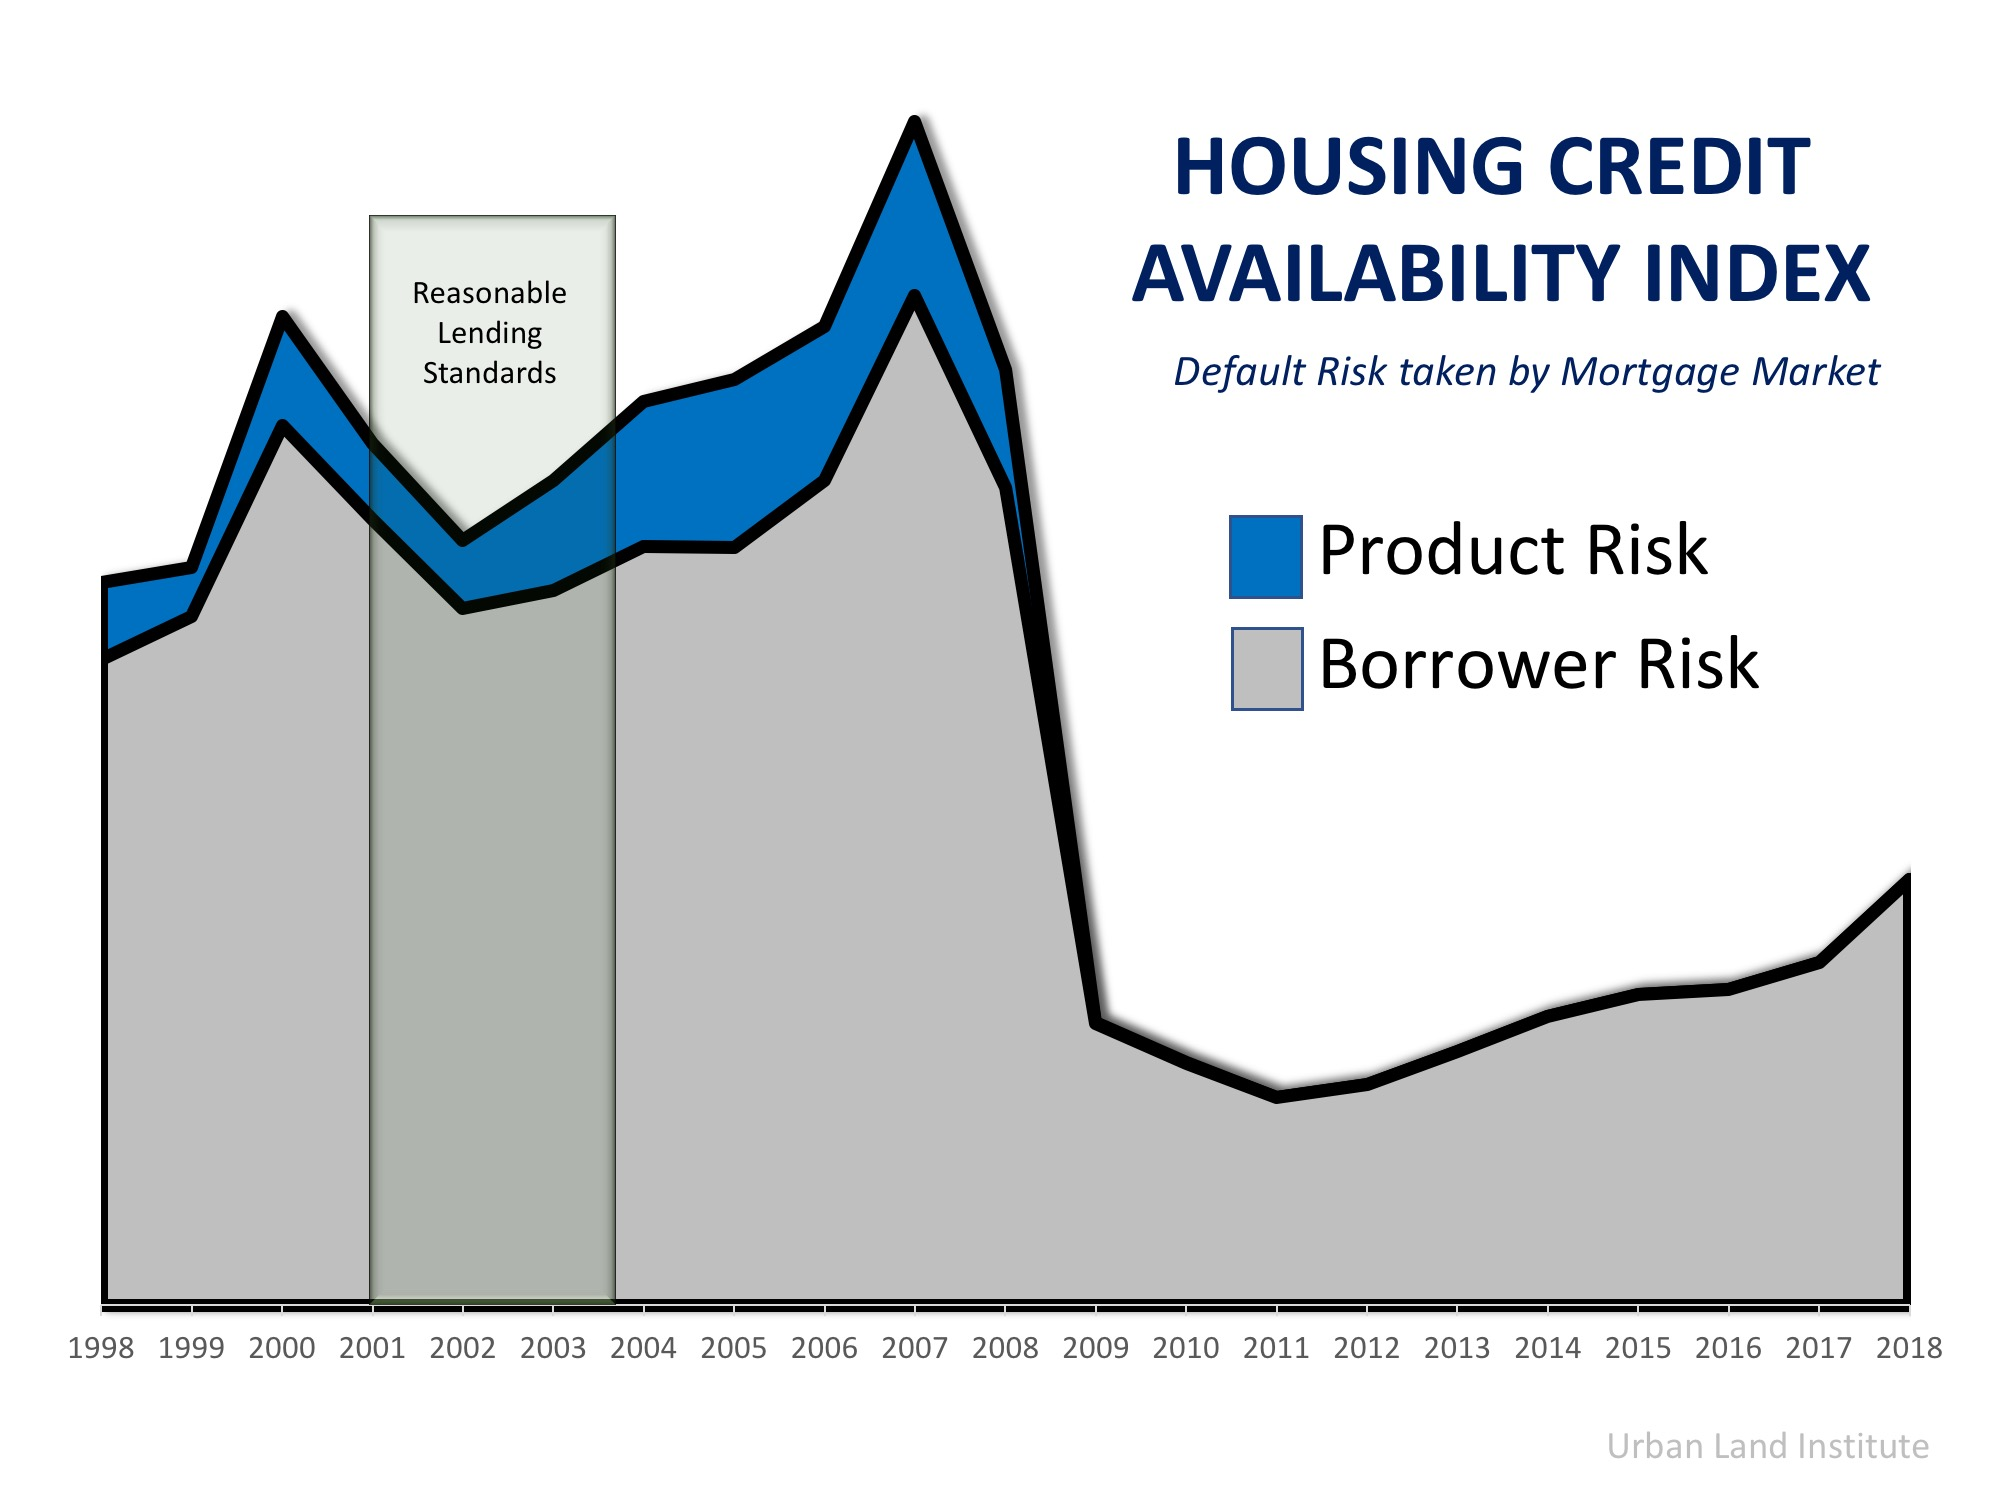 Housing Credit Availability Index Chart 2018